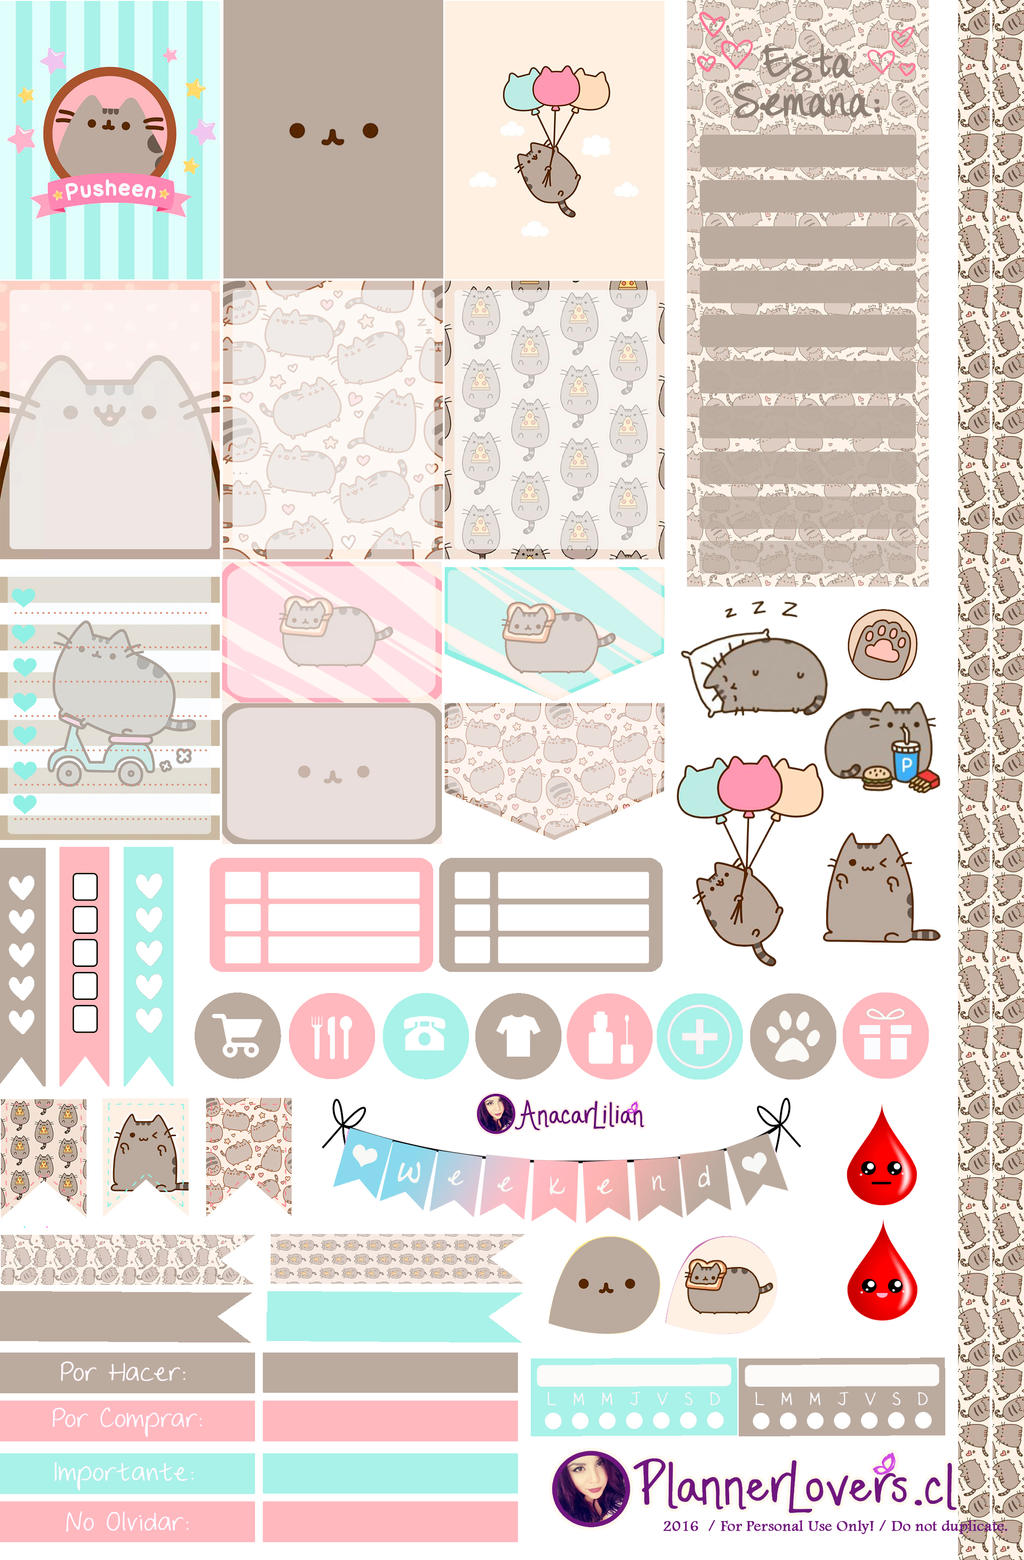 Pusheen Free Printable Stickers By Anacarlilian On